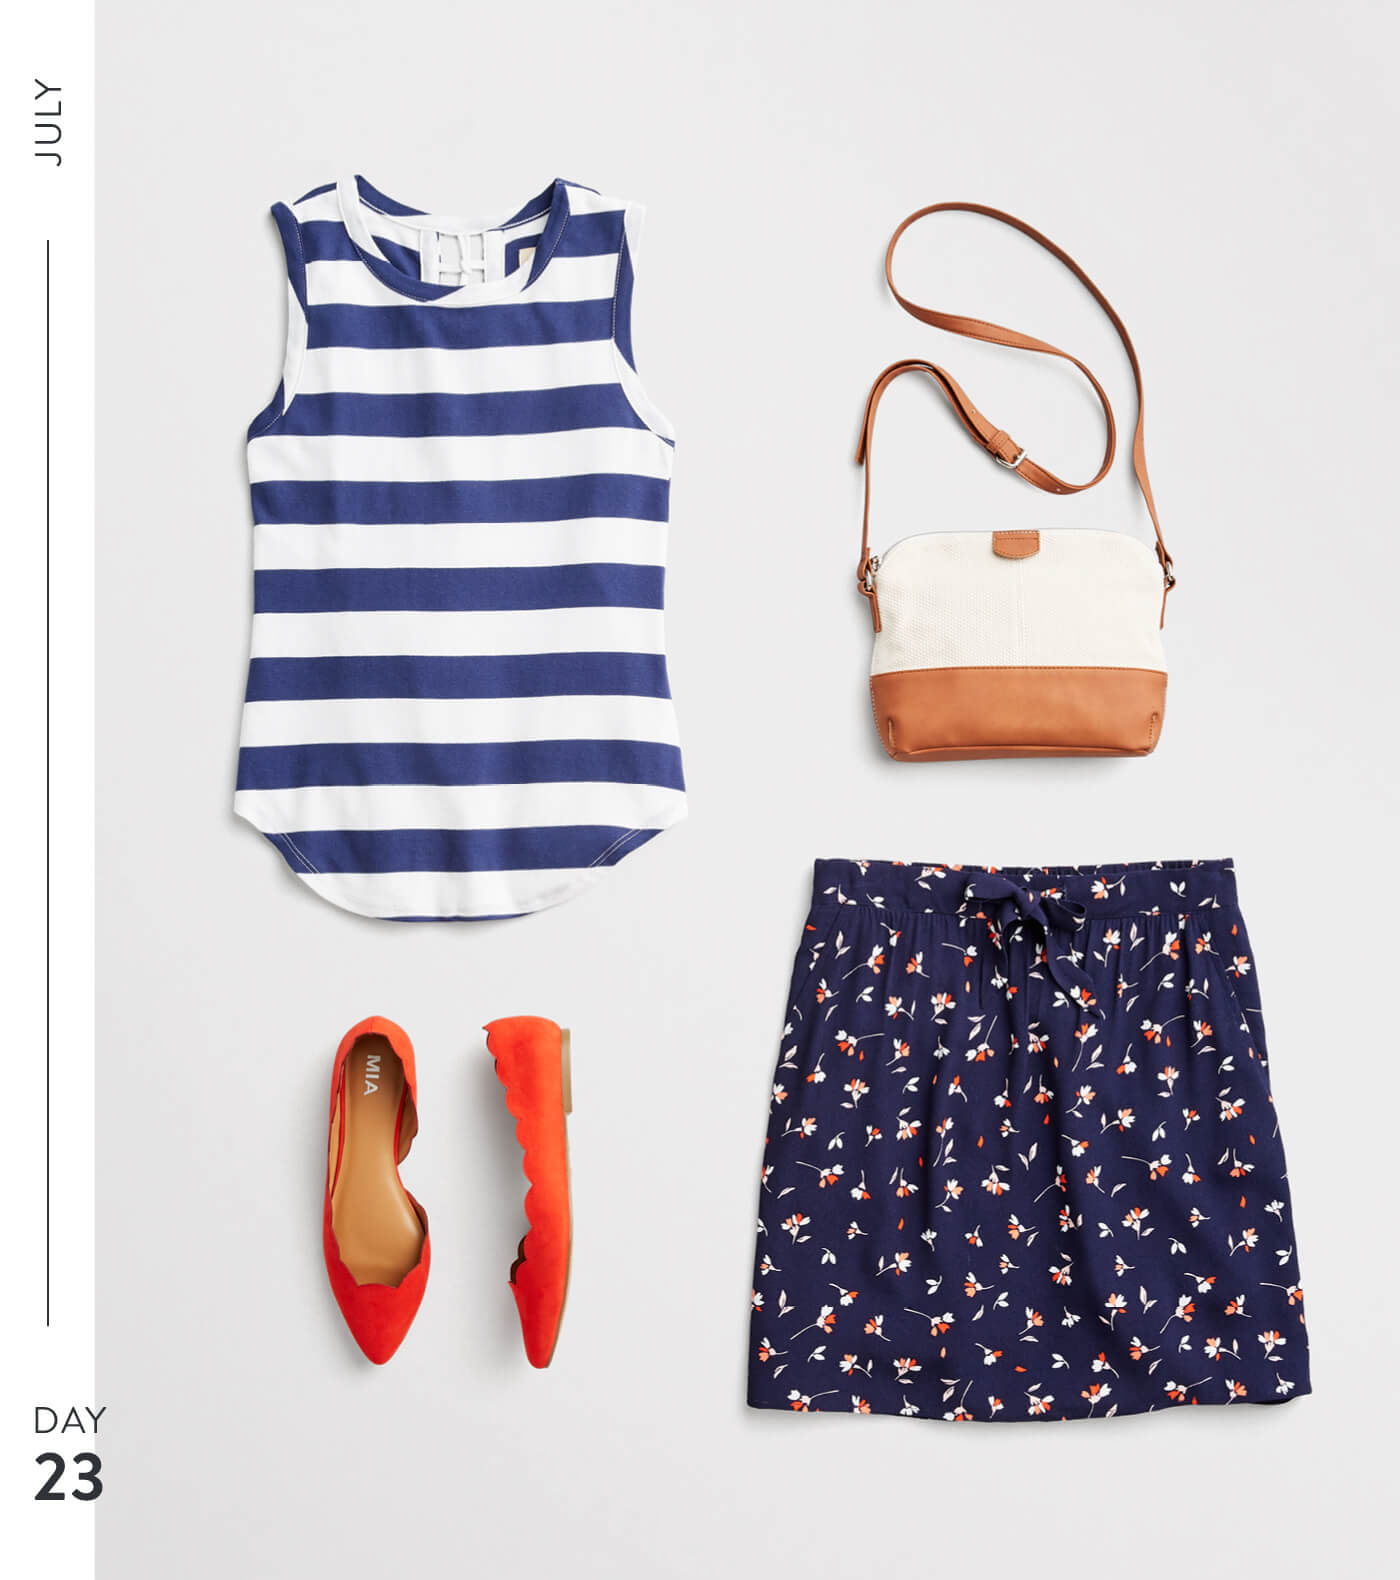 T3_W19_BLG_July-Month-of-Outfits-_357260432_23